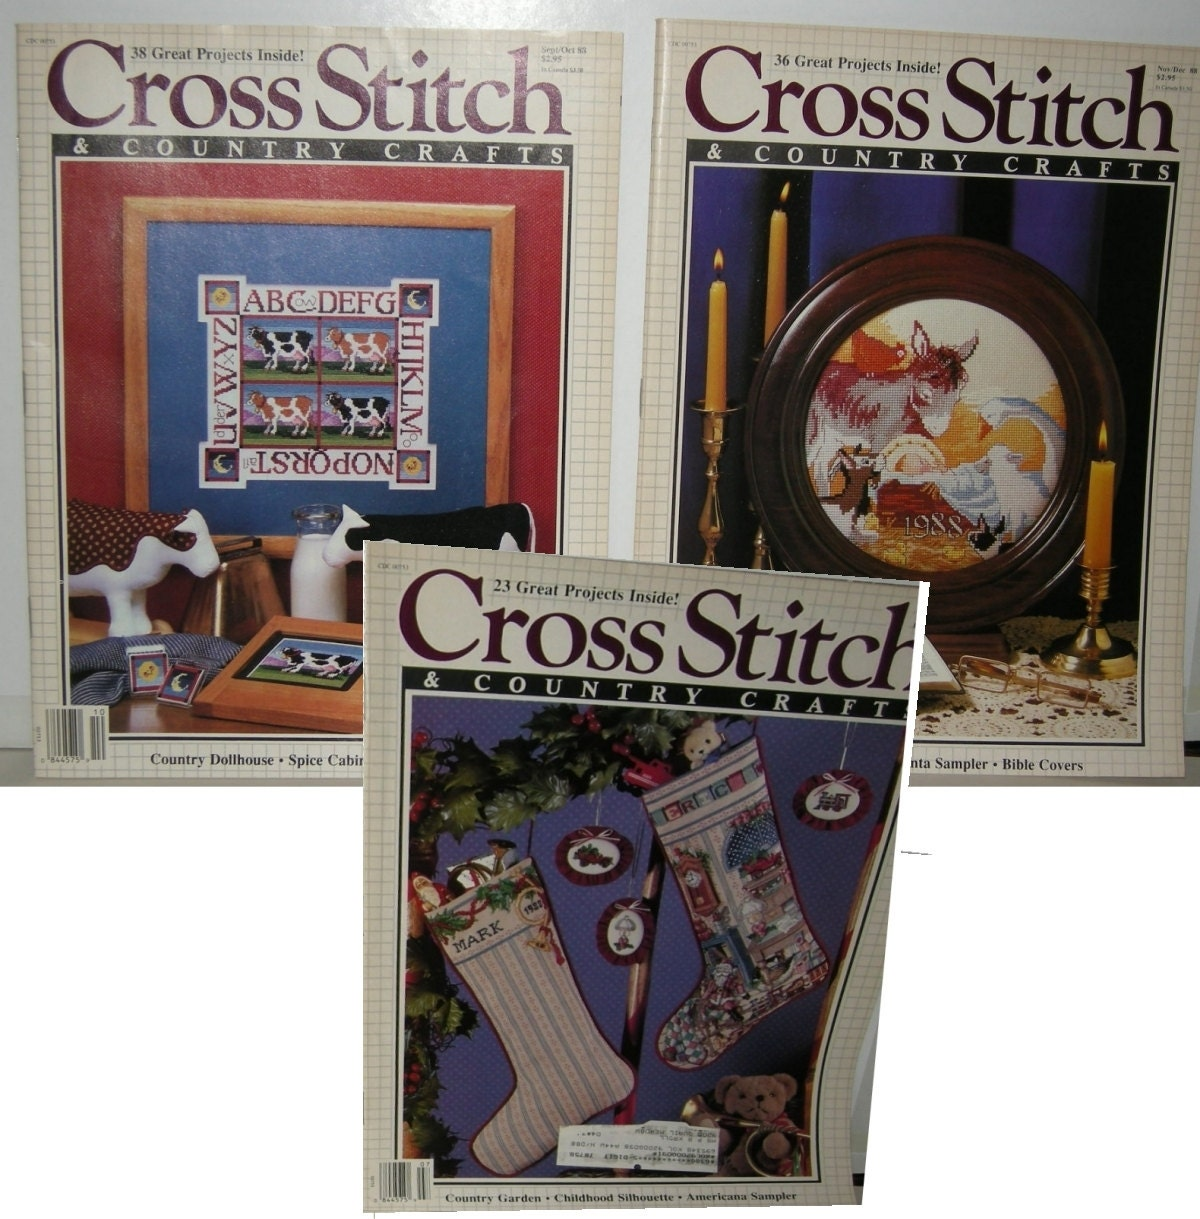 Cross stitch country crafts magazine back issues - Vintage Cross Stitch Sewing Patterns Magazines Country Crafts 3 Issues 1988 Embroidery Samplers Christmas Stockings Pictures 97 Projects